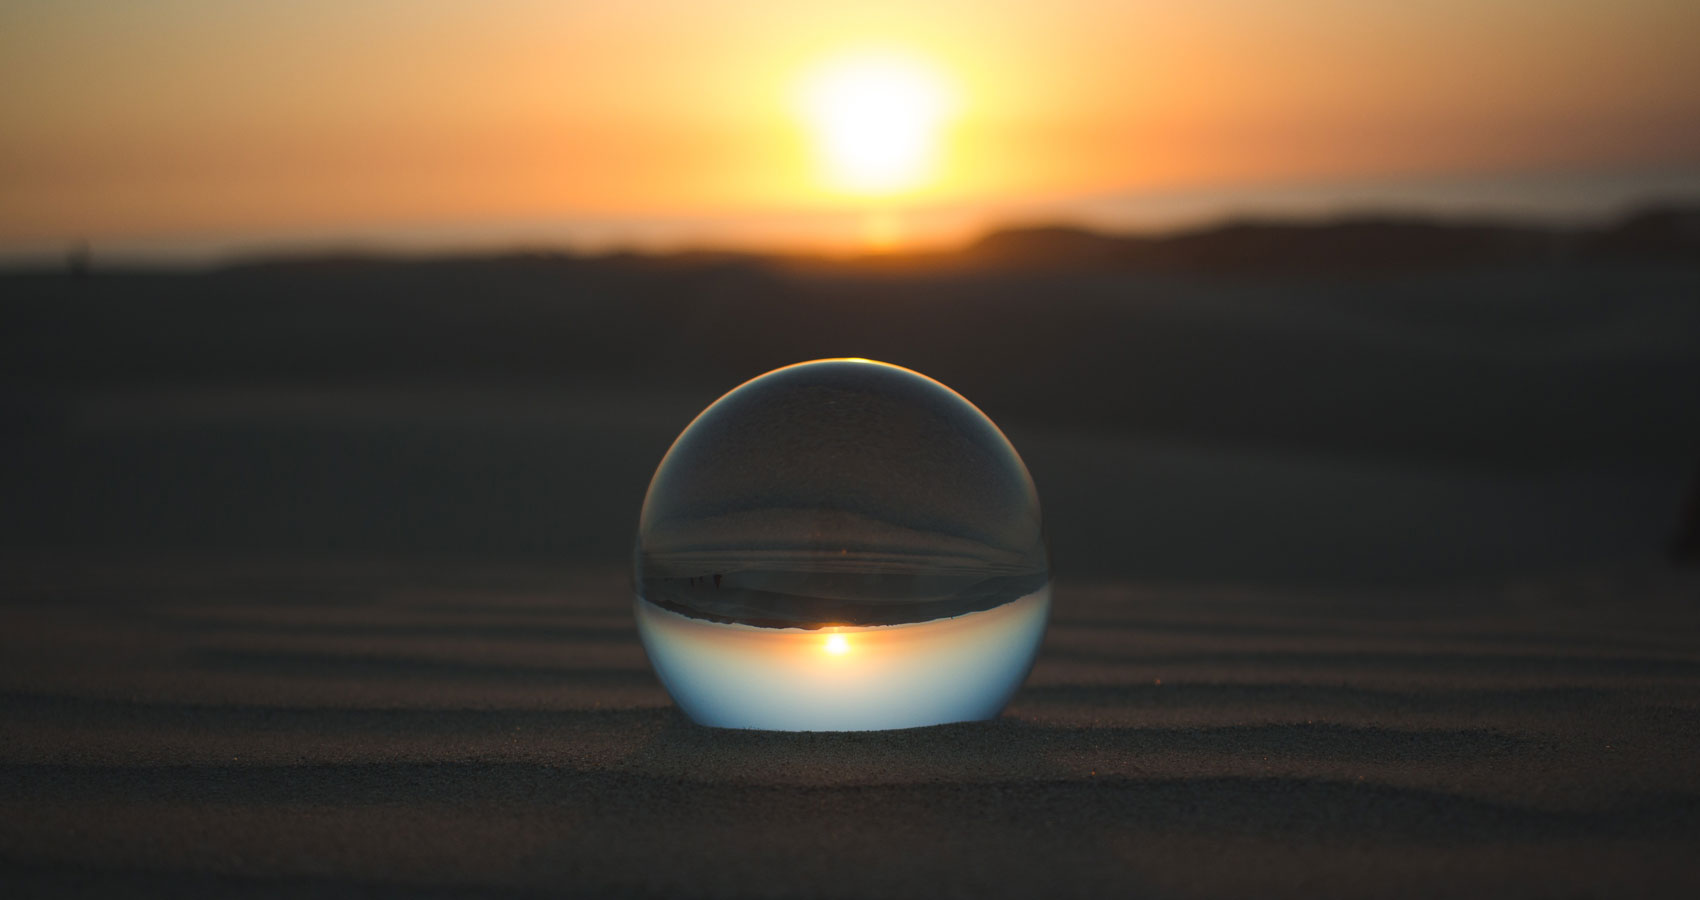 The Crystal Ball, poetry written by Henry Bladon at Spillwords.com